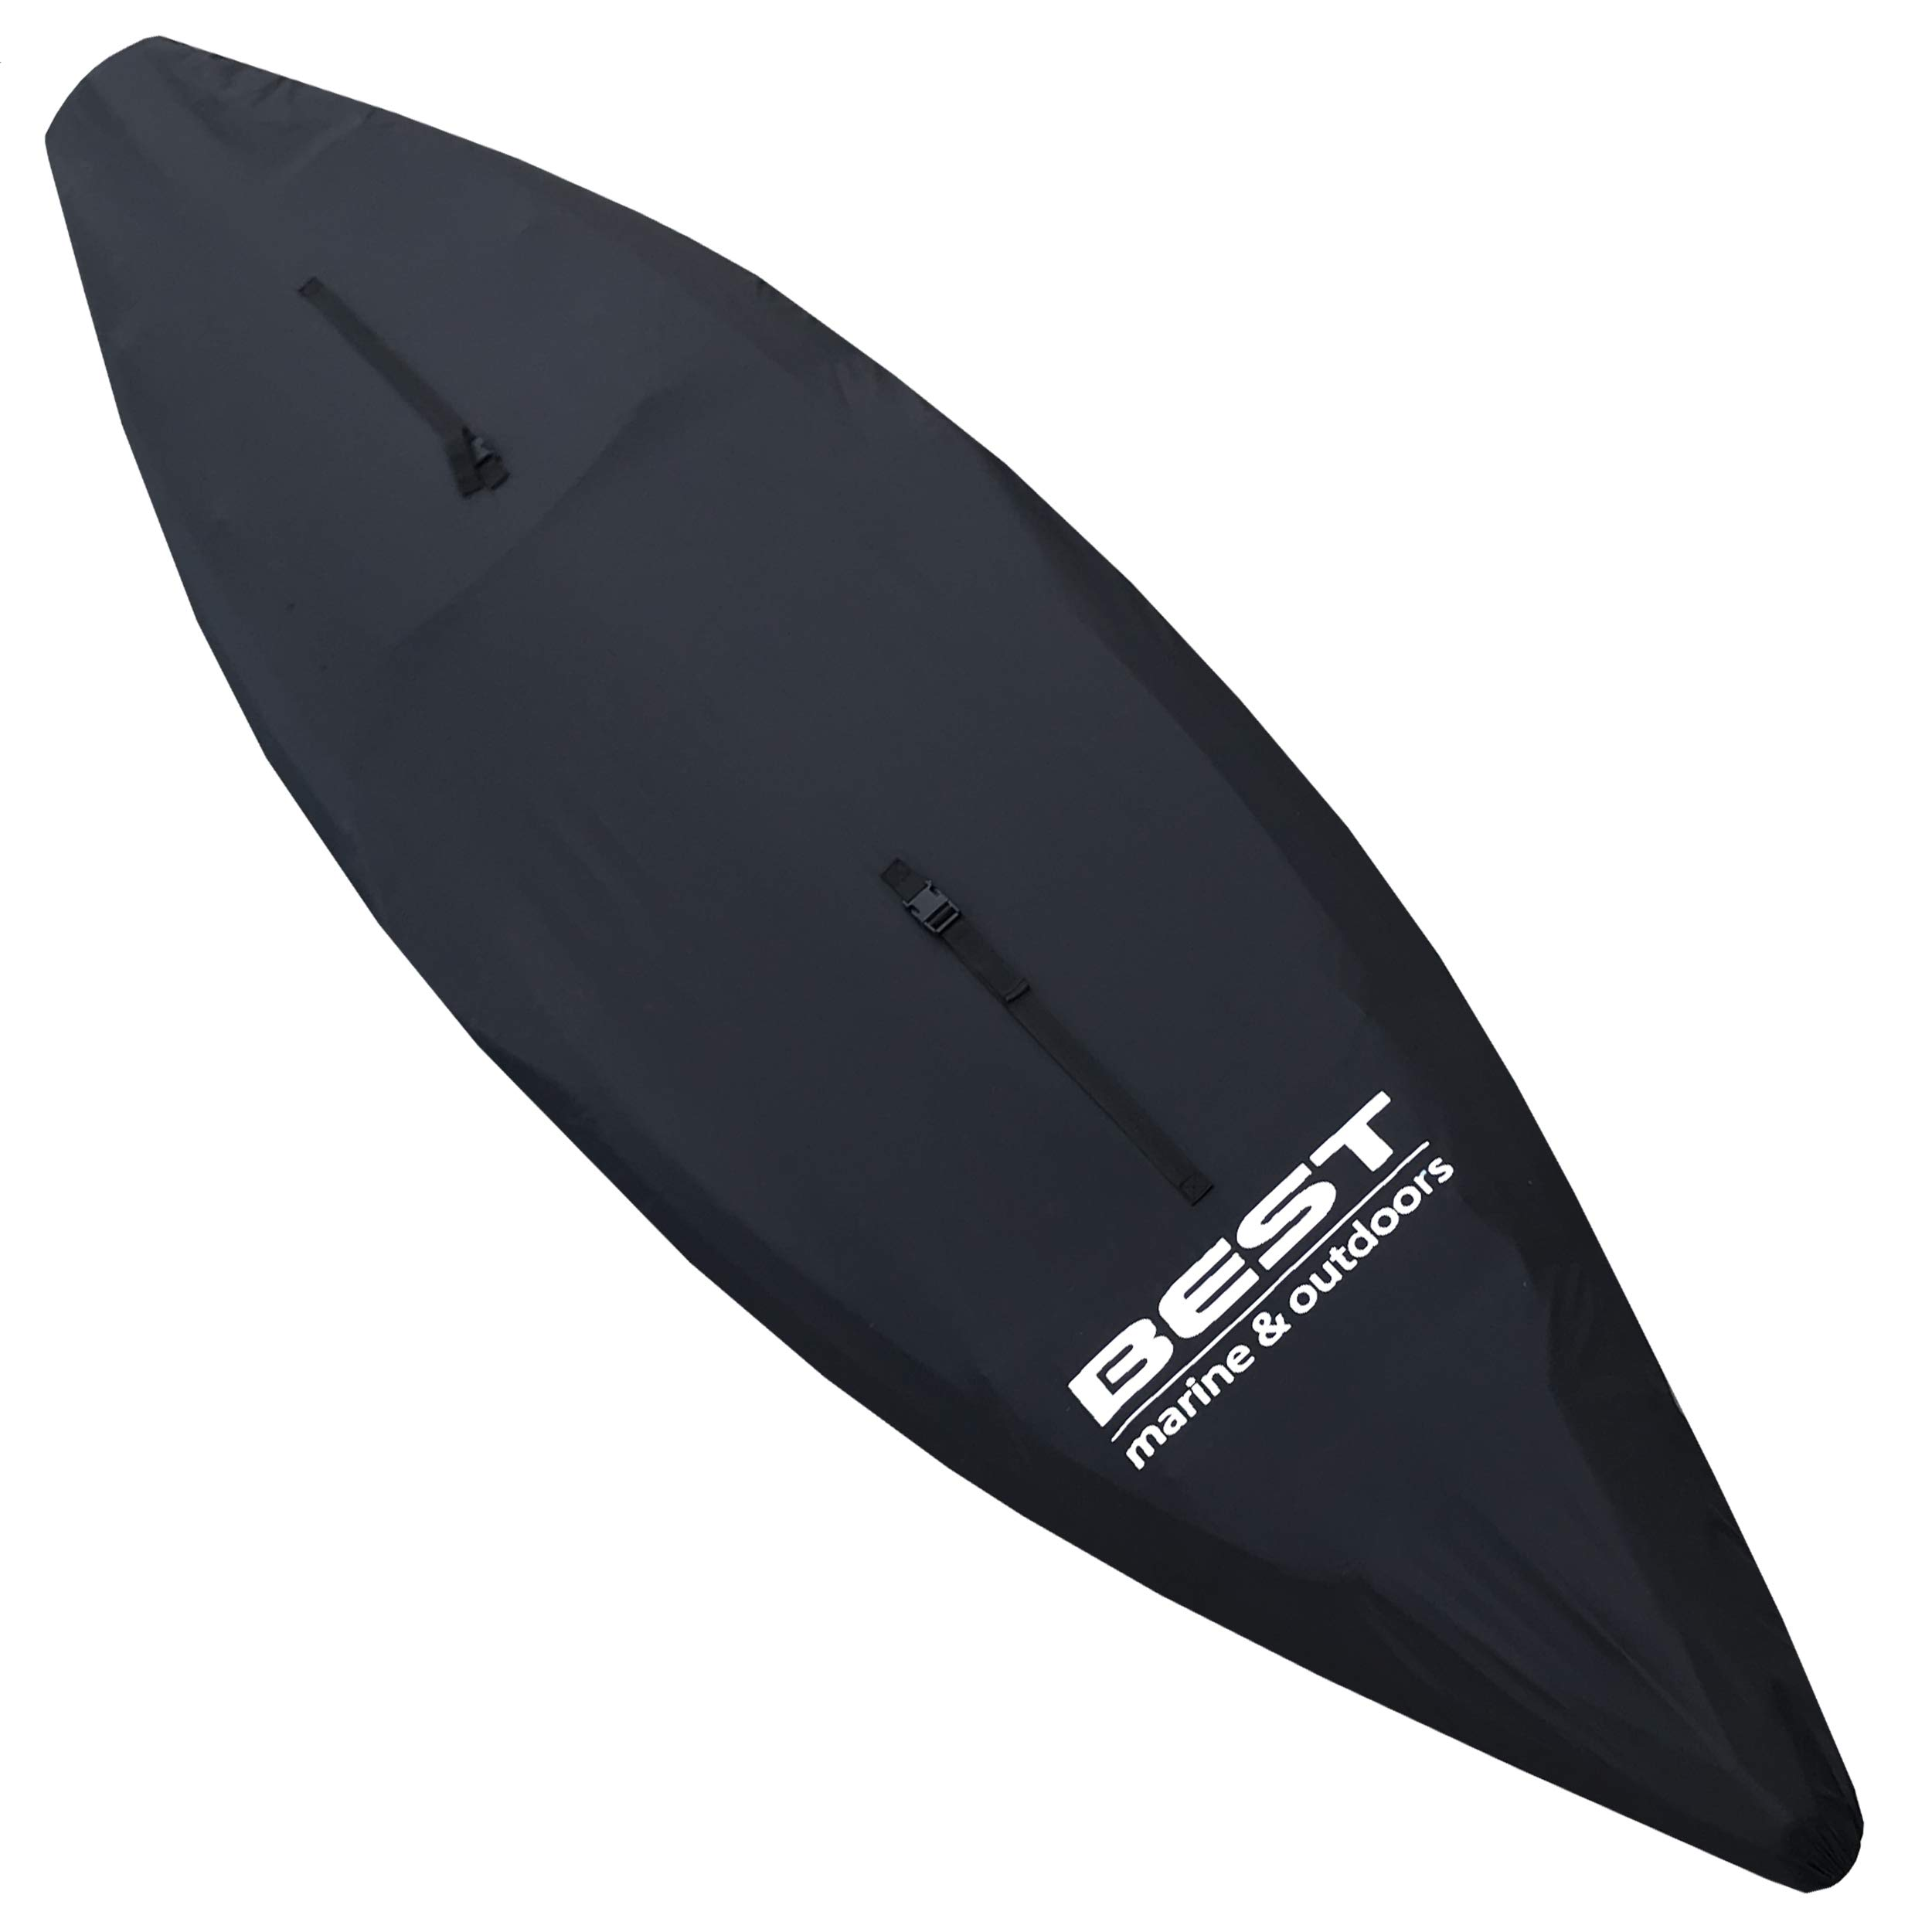 Best Marine Kayak Cover (L) Accessories for Indoor/Outdoor Storage. Durable Waterproof Covers That Protect Your Kayaks and Cockpit from UV Rays, Debris and Water. Also Works with SUP Paddle Boards by BEST Marine and Outdoors